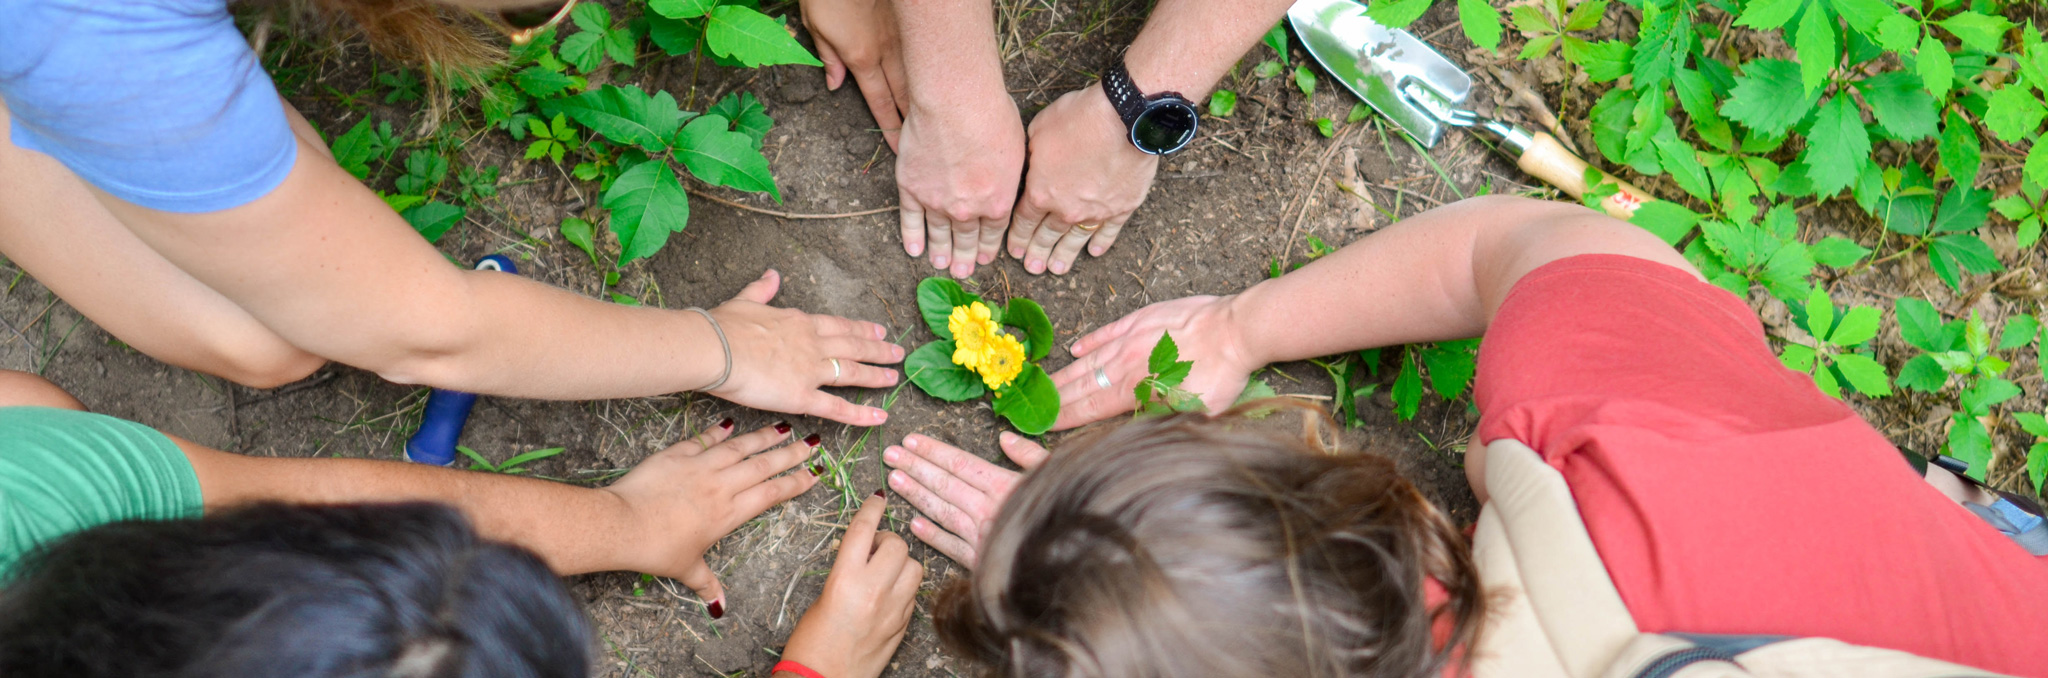 Peoples hands around a flower planted in garden. Photo by Element5 Digital on Unsplash